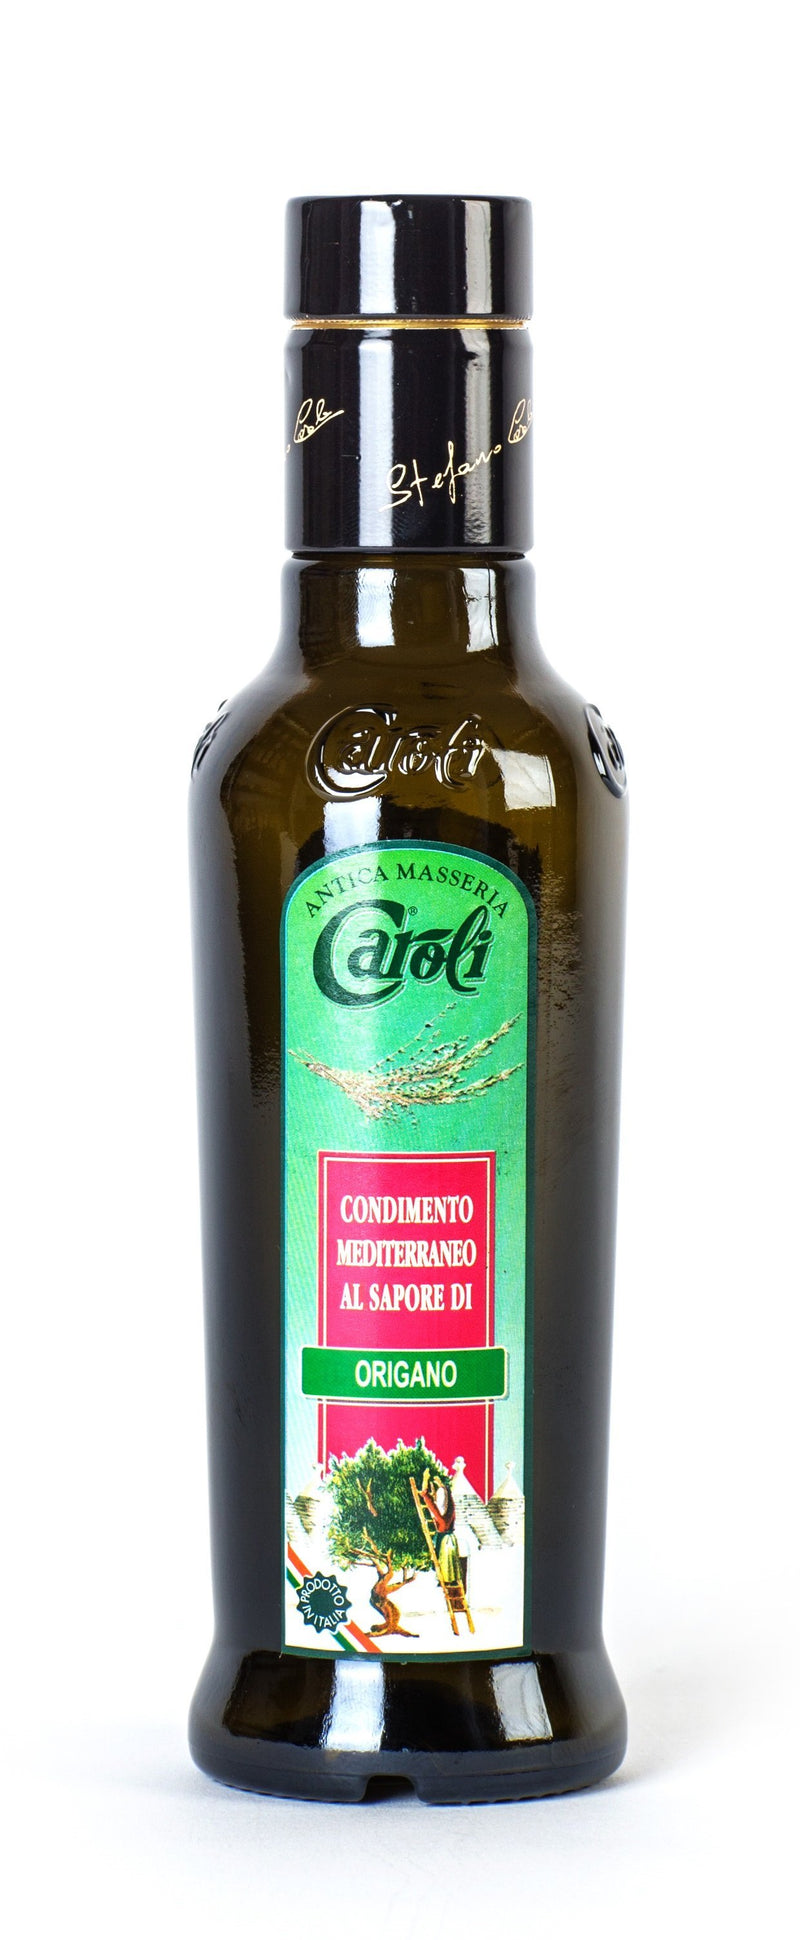 Caroli USA, Inc Caroli EXTRA VIRGIN OLIVE OIL 250 ml (8.4 fl oz) Flavored. Cold Pressed.